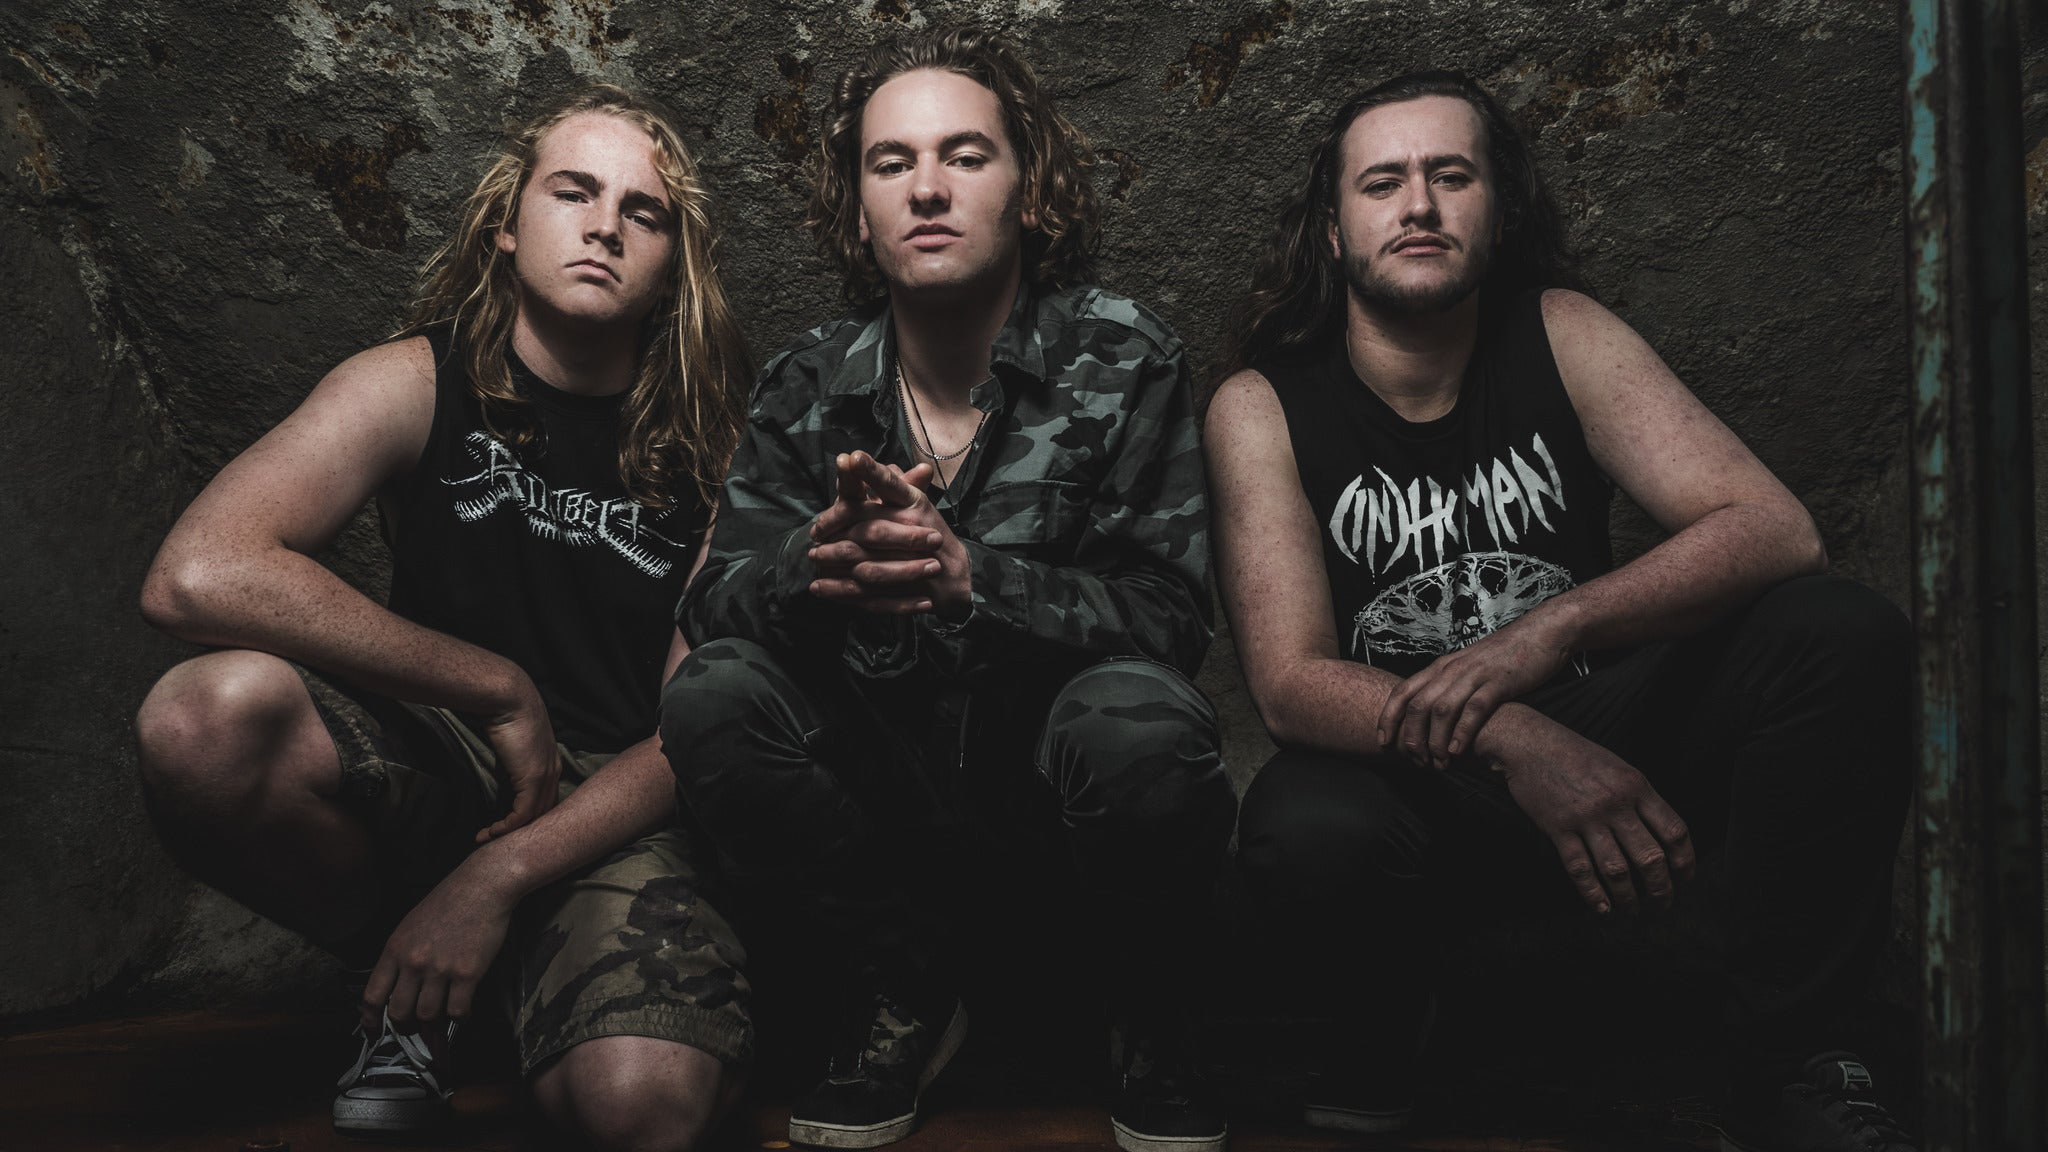 Alien Weaponry at Bluebird Theatre